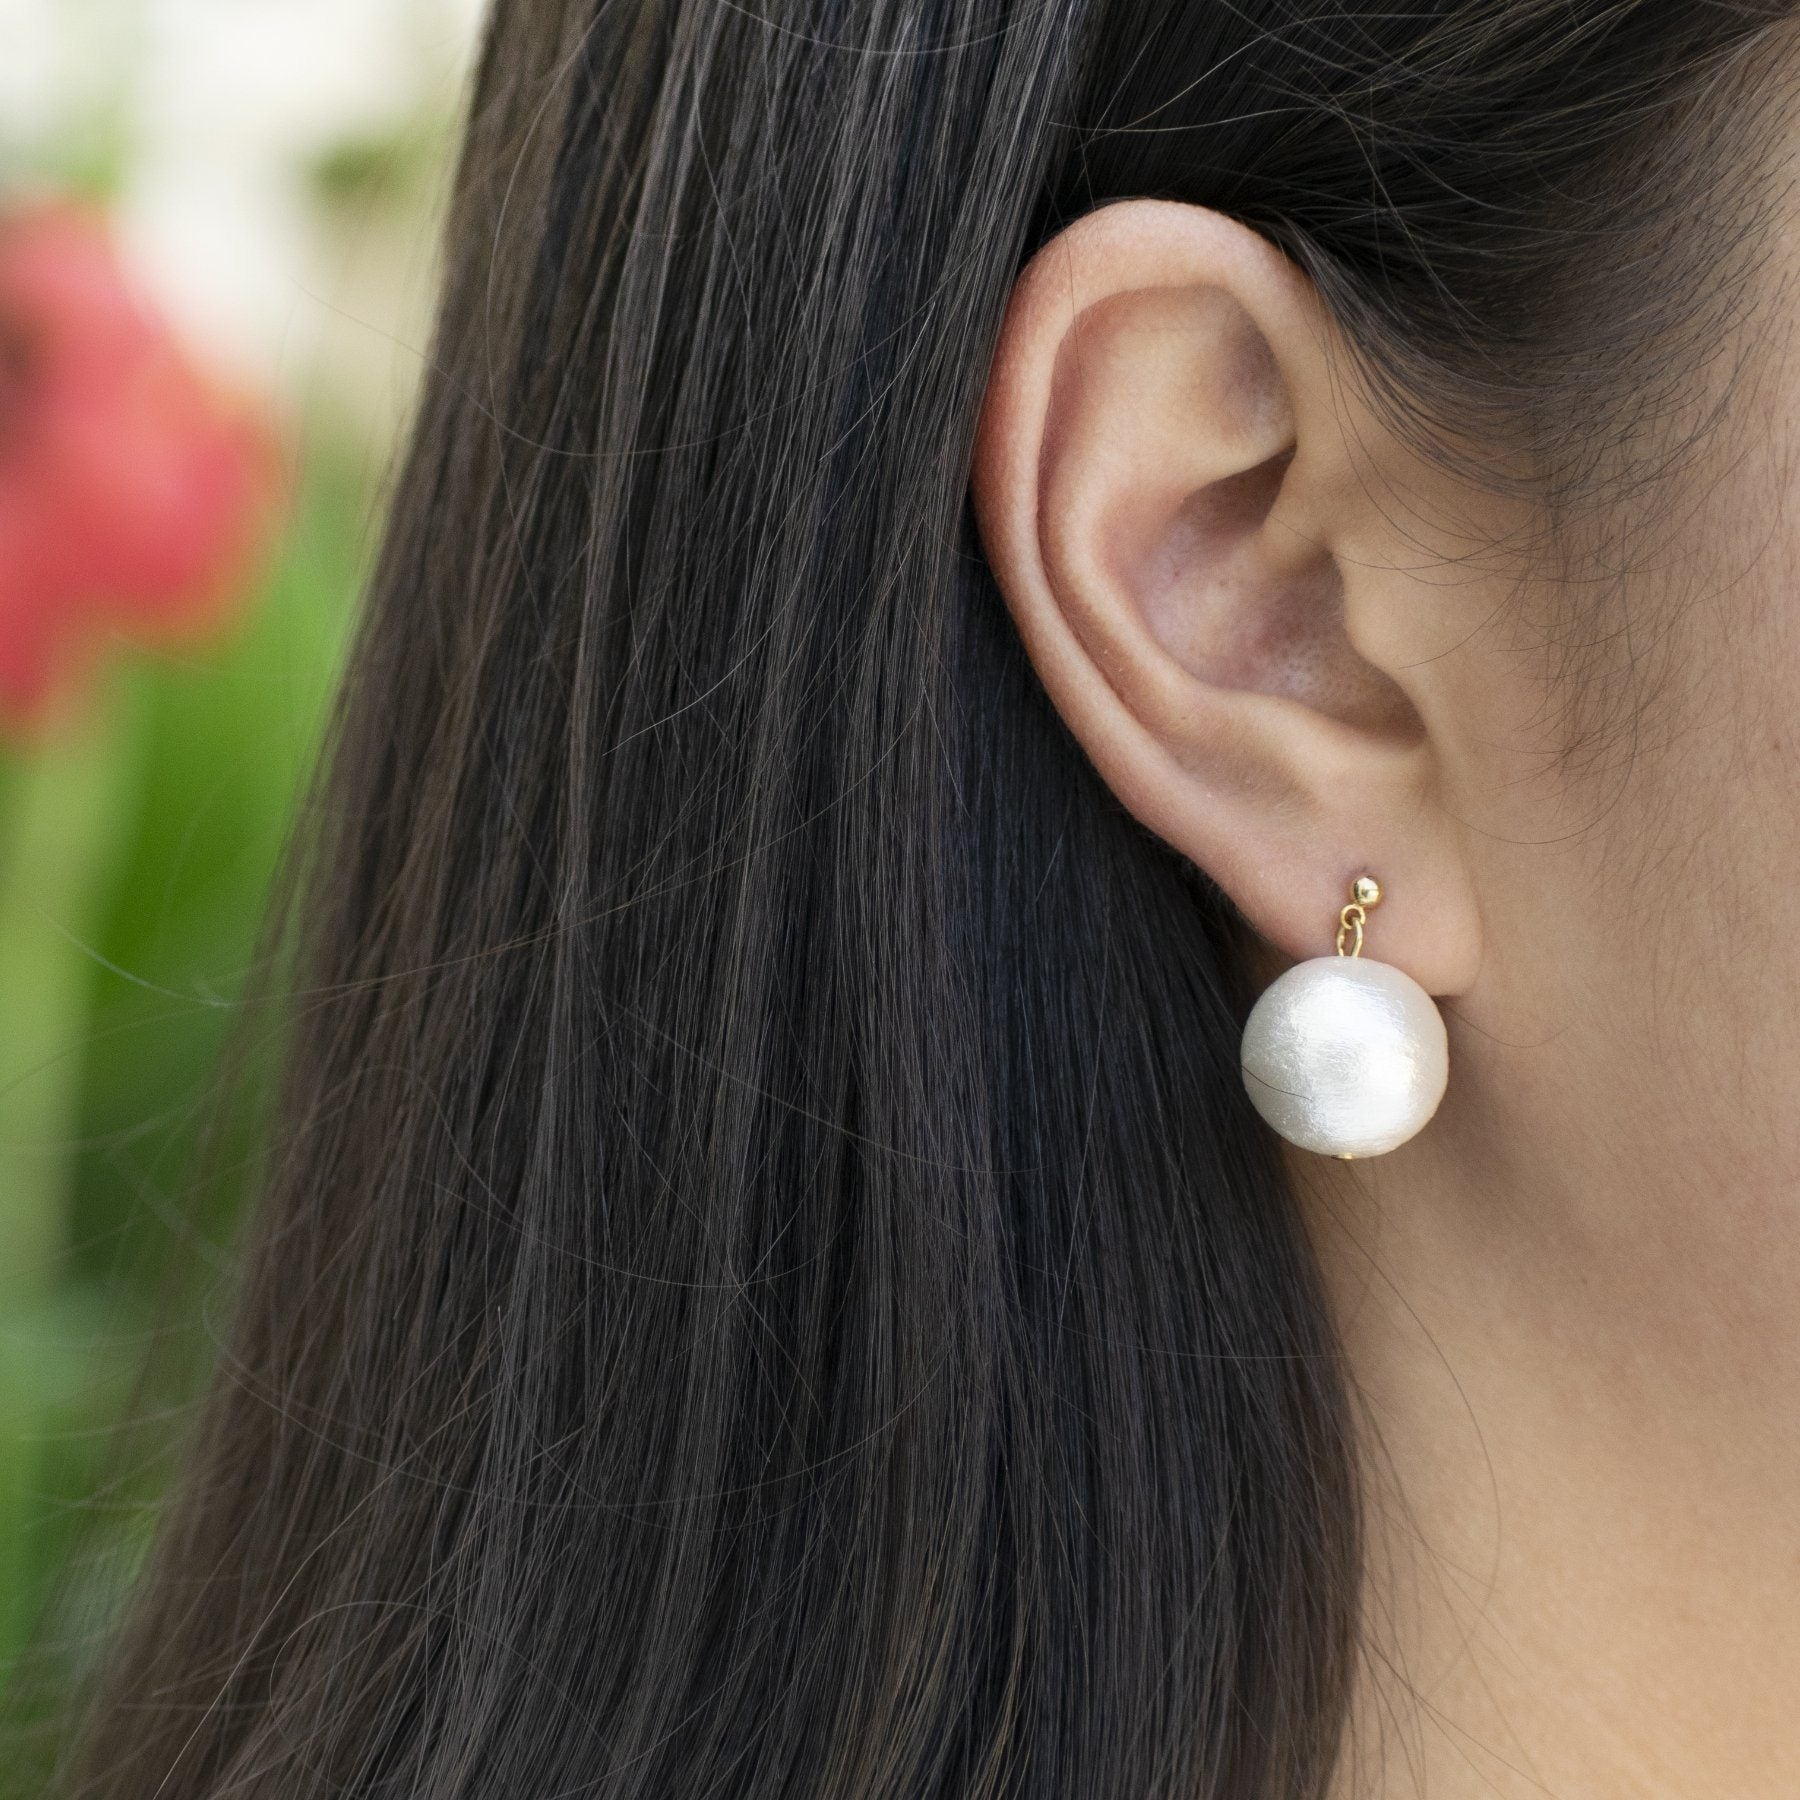 closeup of woman's ear with oversized pearl drop earring